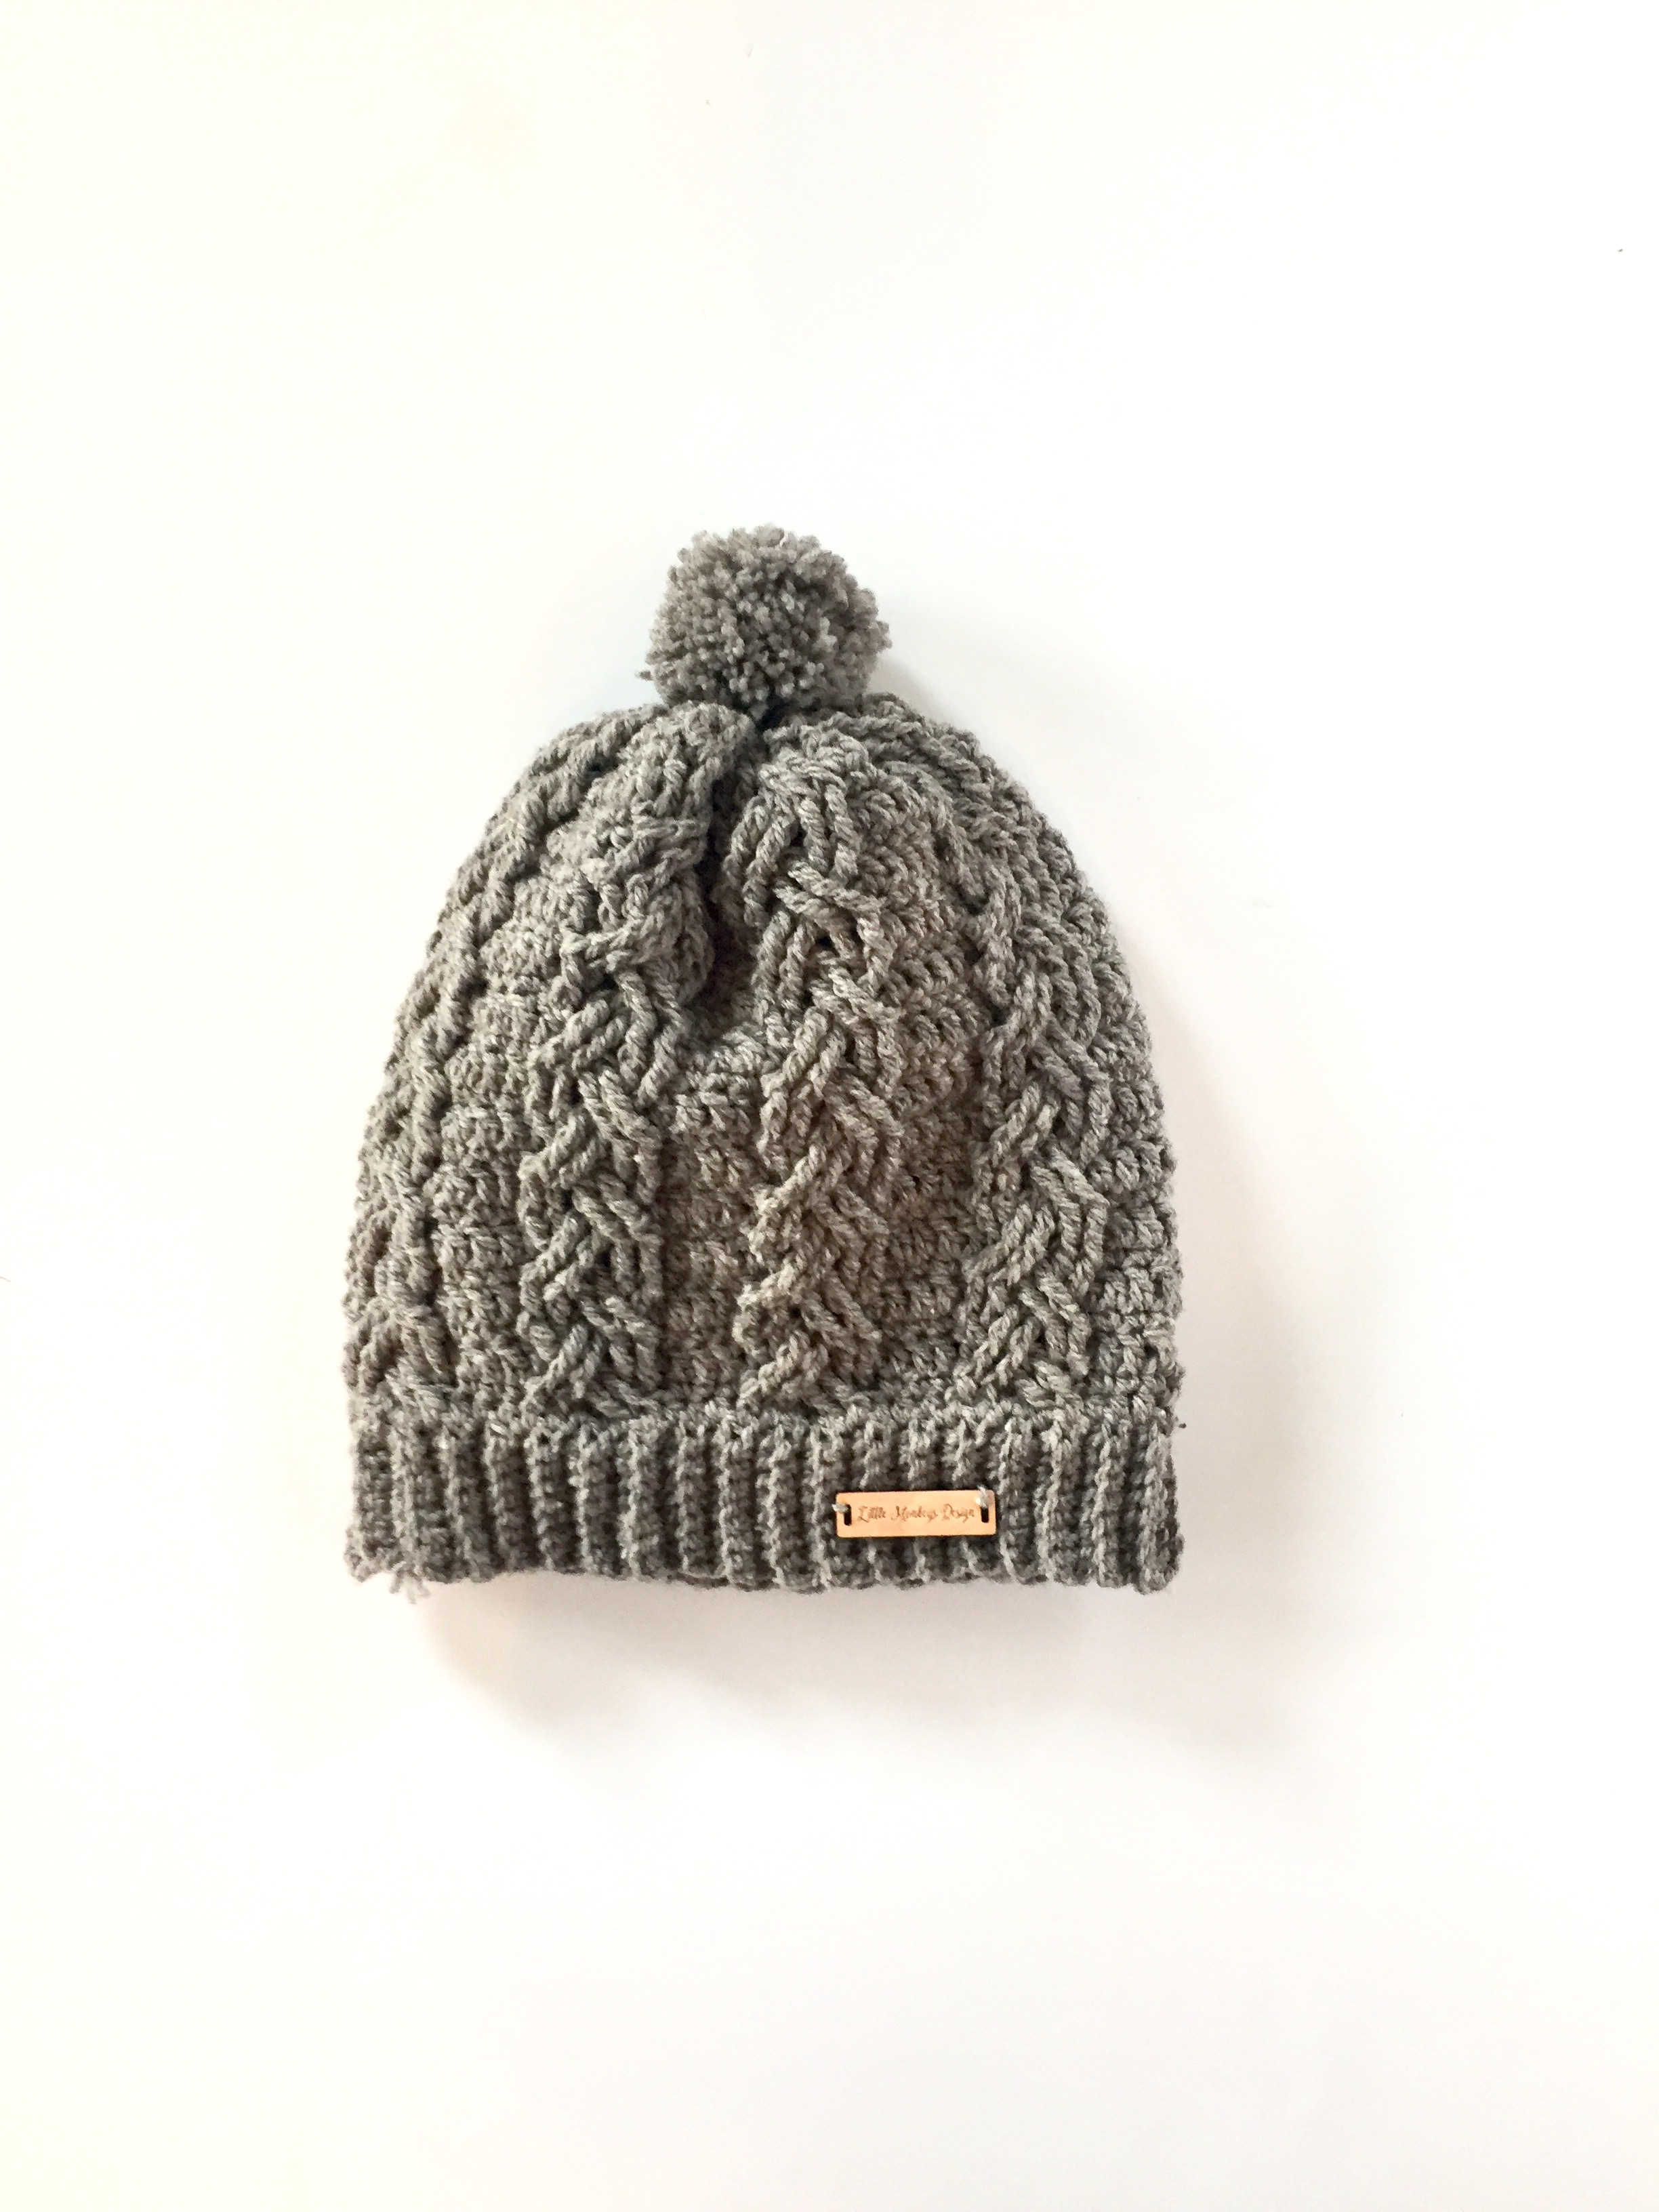 dreaming-of-the-slopes-winter-hat